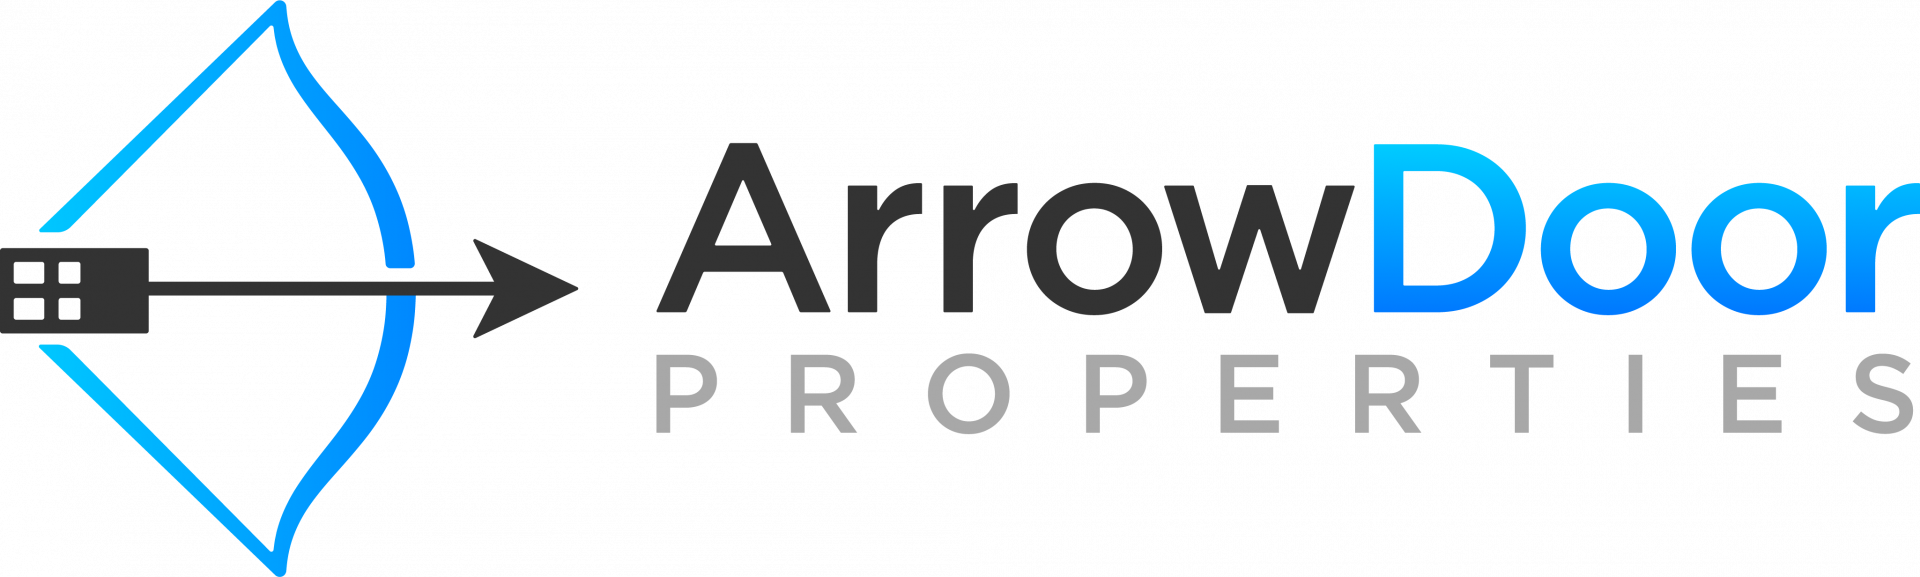 ArrowDoor Properties logo